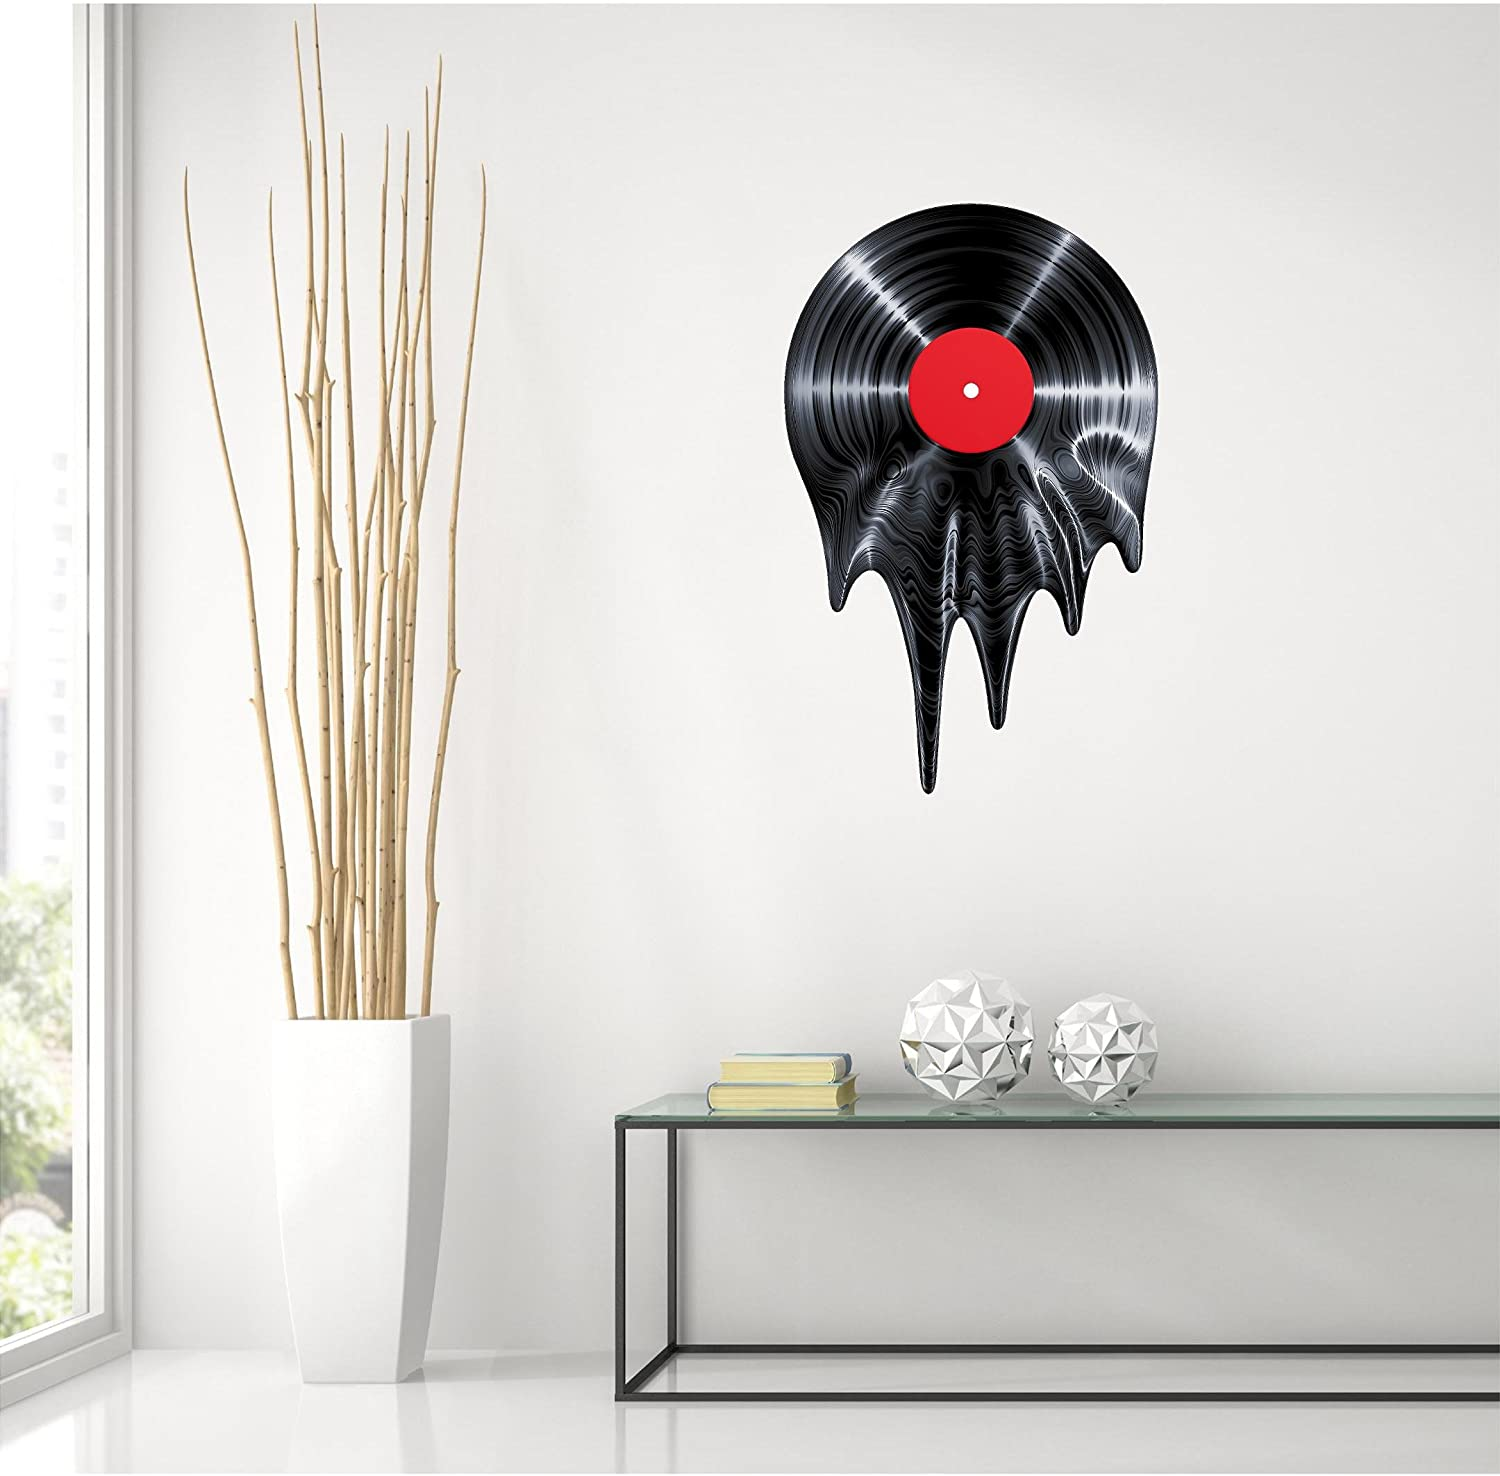 """36"""" Melting Record Wall Decal Vinyl Graphic 50's 60's 70's Music Tunes Radio Home Kids Room Man Cave Teen Bedroom Living Room Office Art Decor New"""